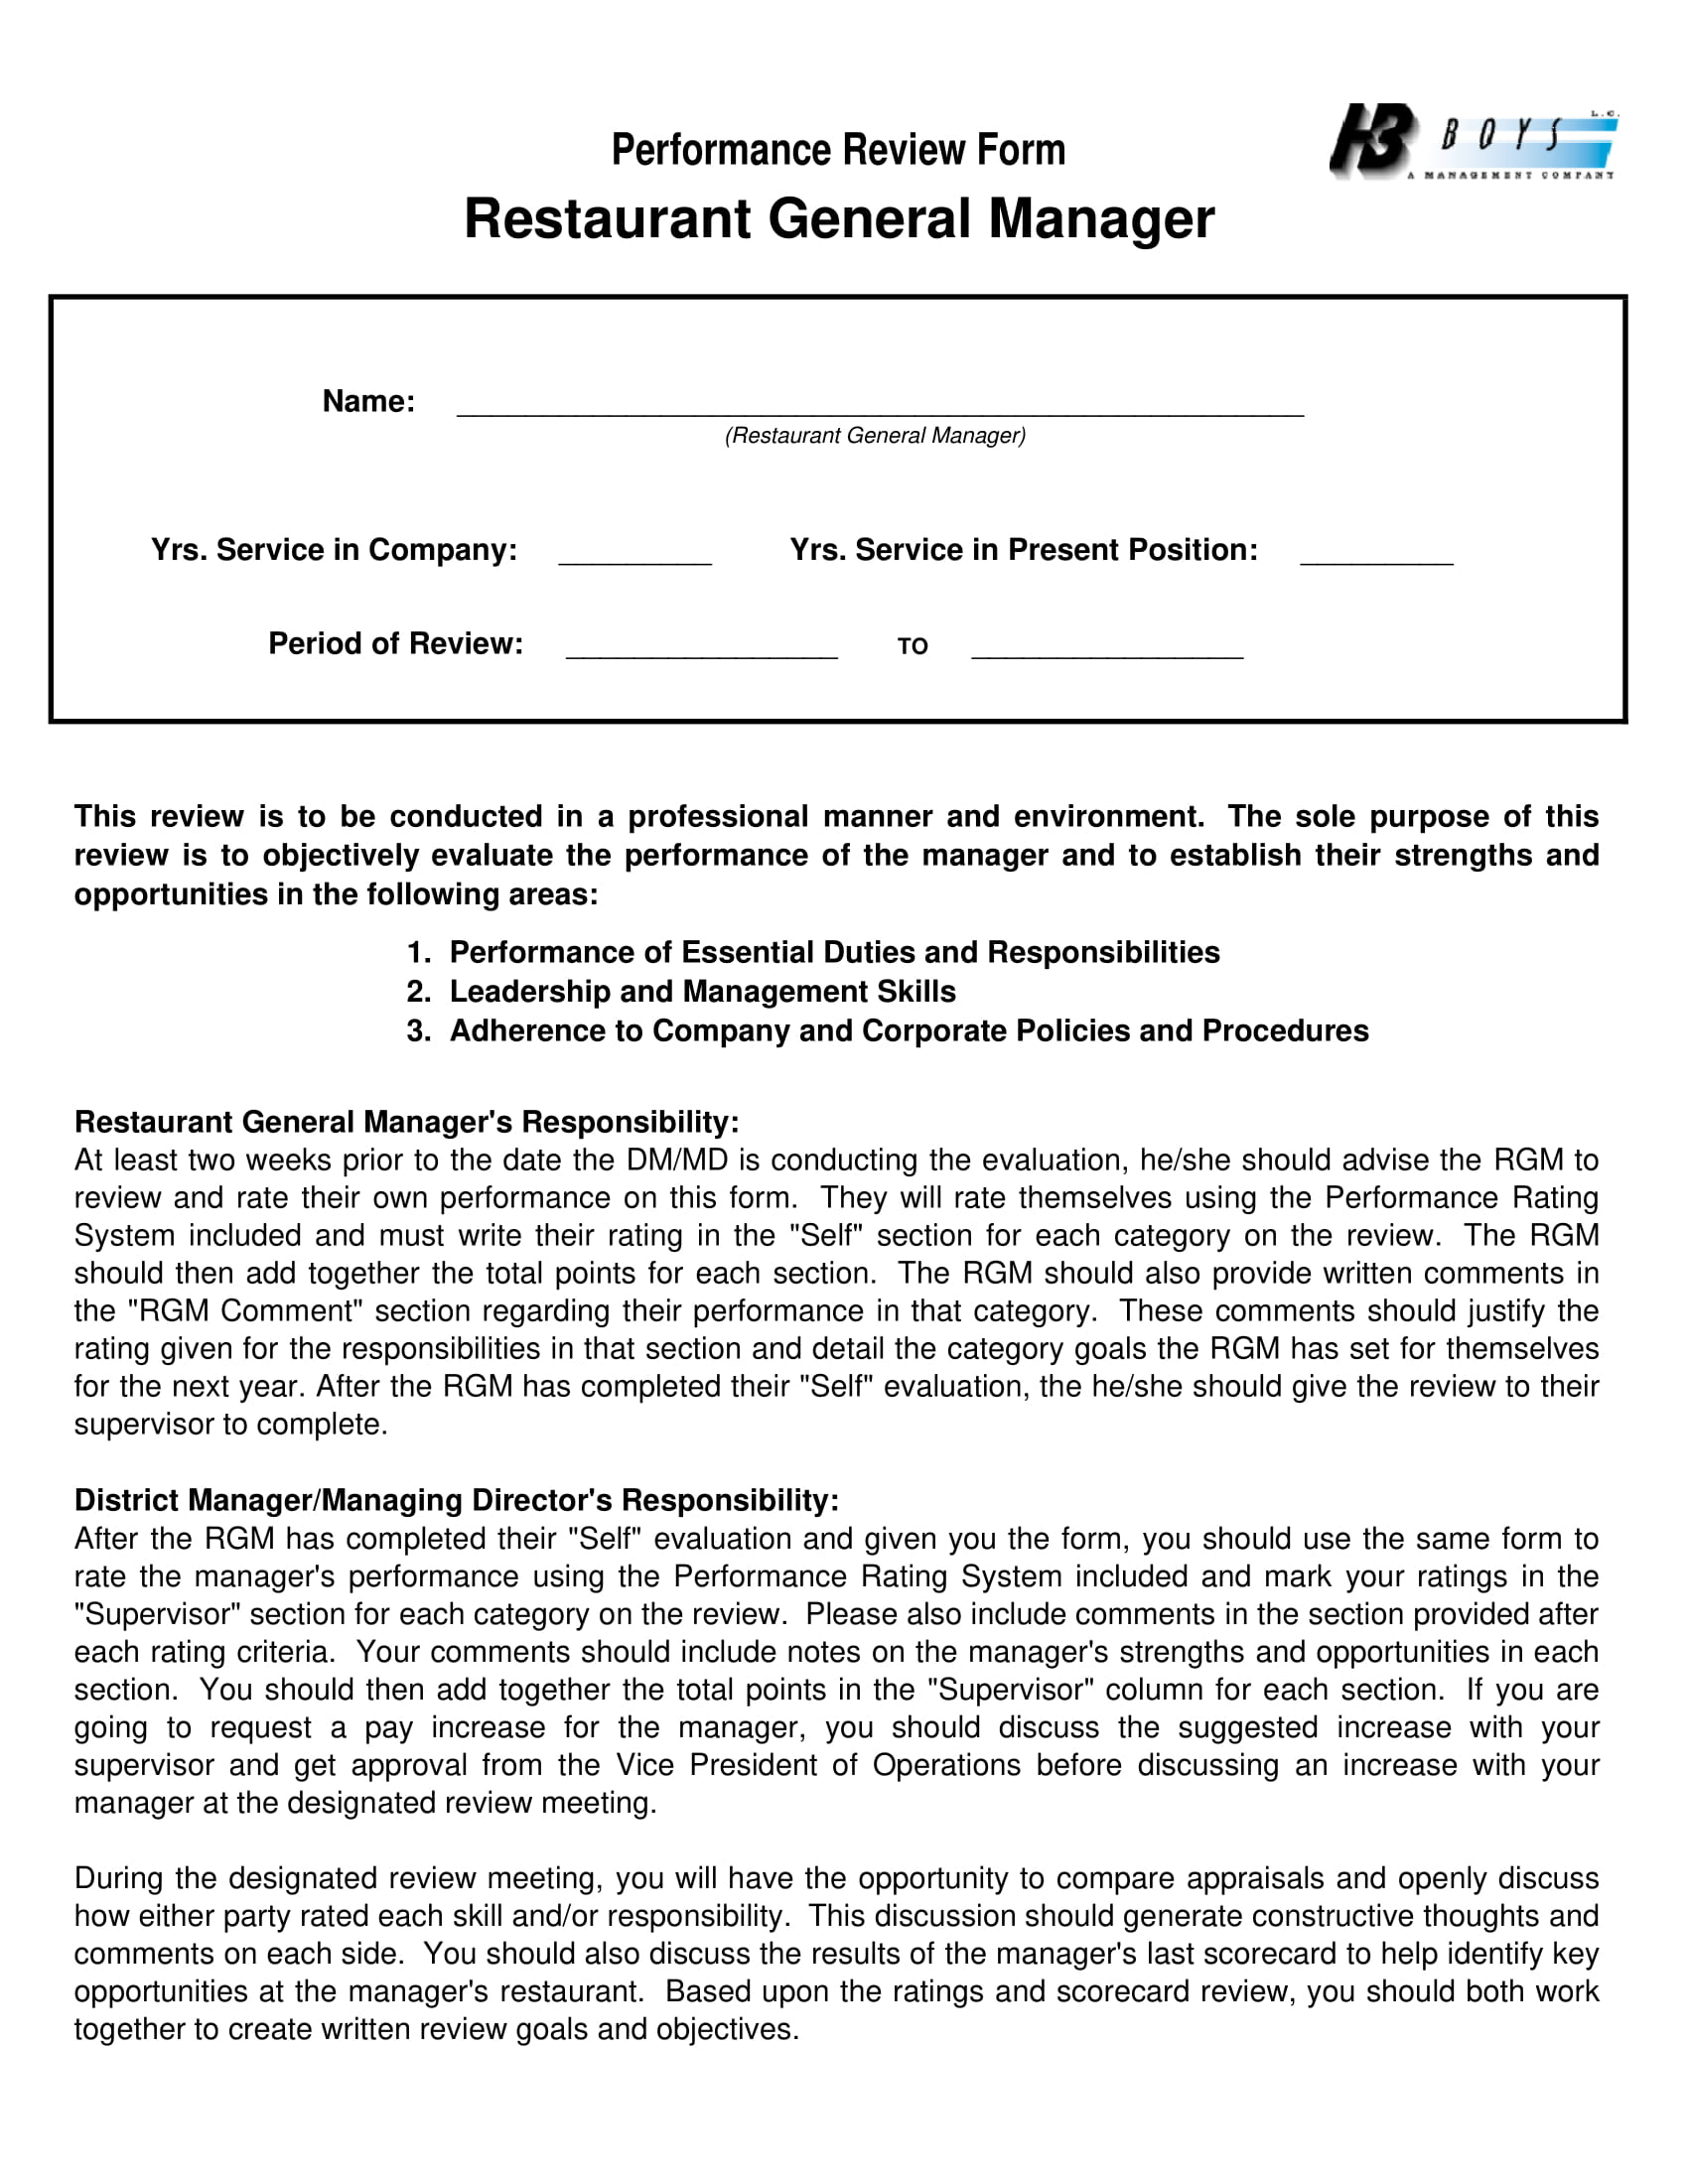 restaurant general manager performance review form 1